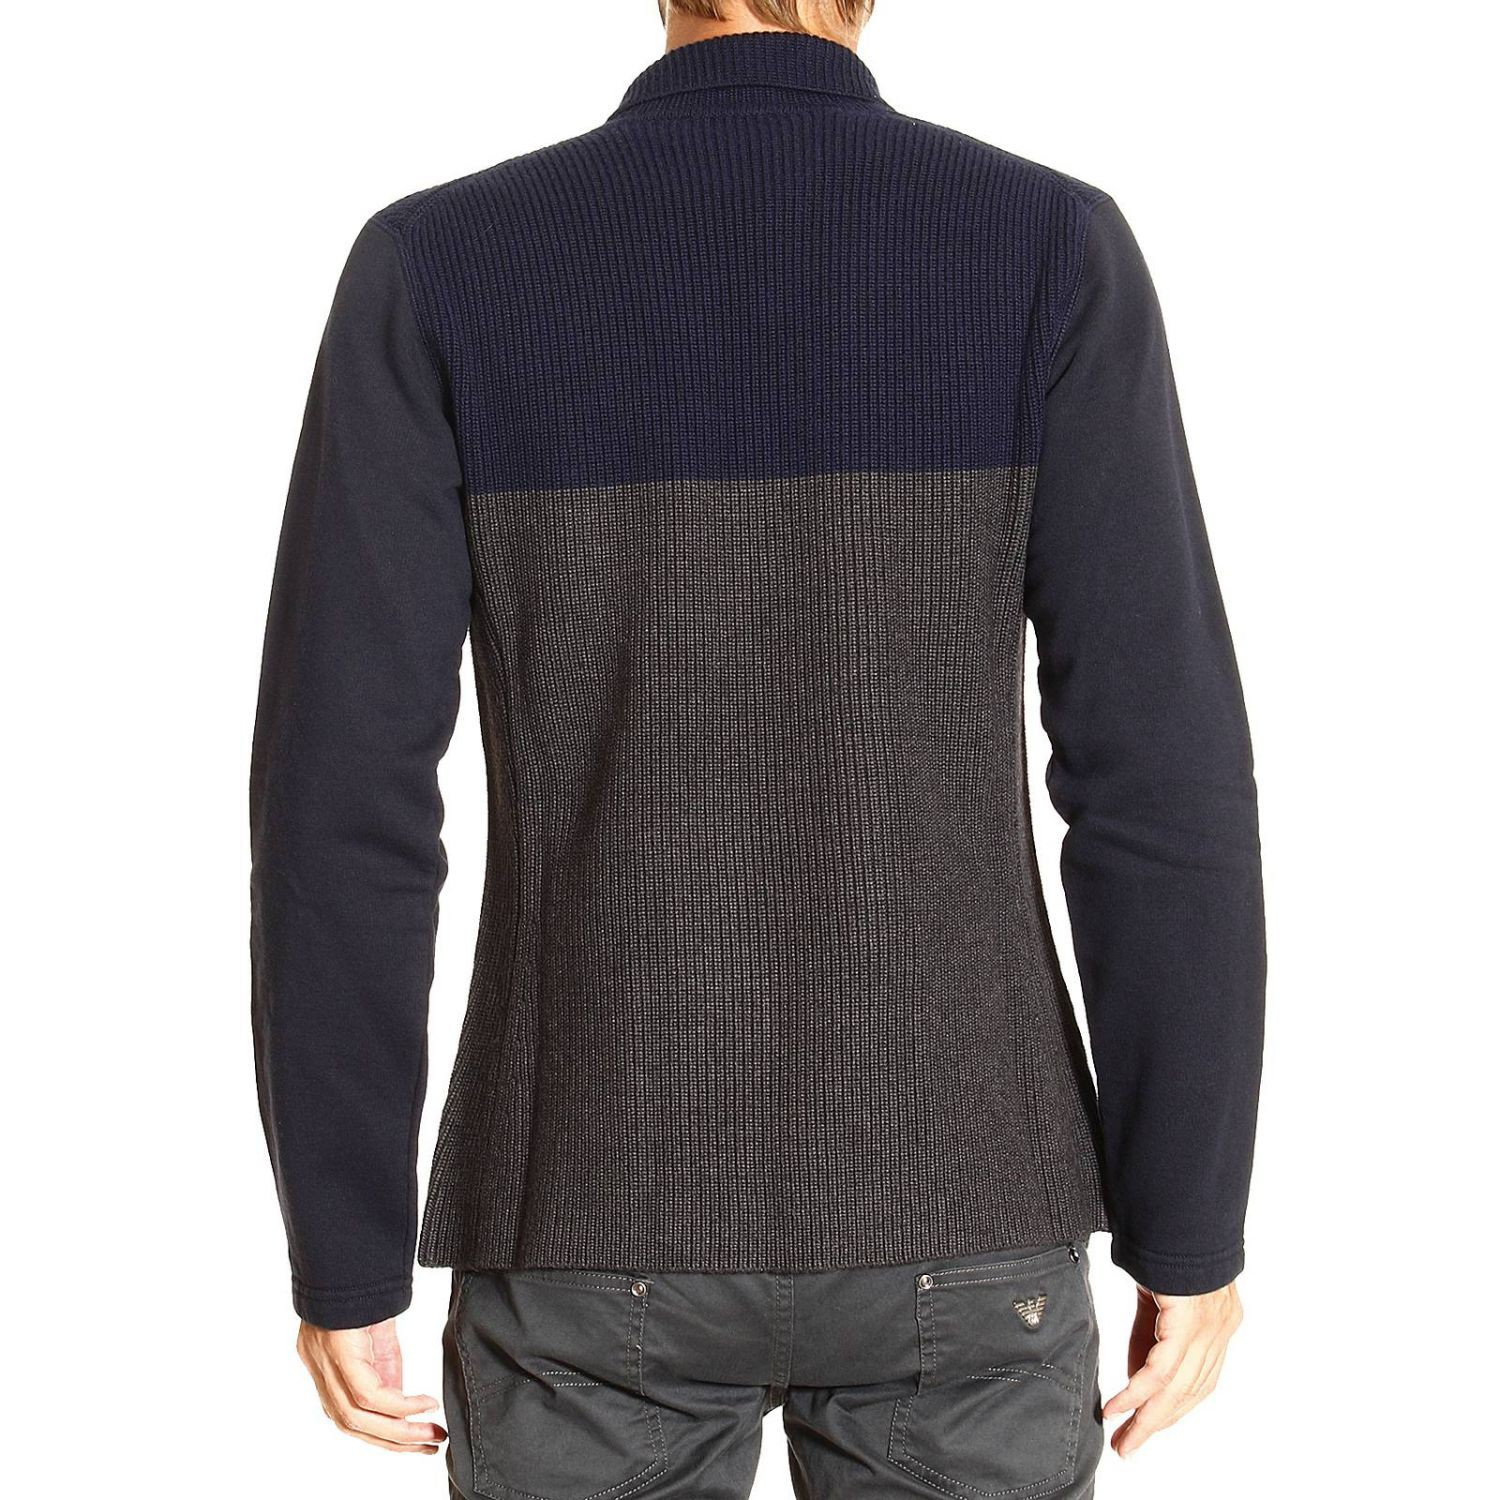 emporio armani sweater in gray for men grey lyst. Black Bedroom Furniture Sets. Home Design Ideas